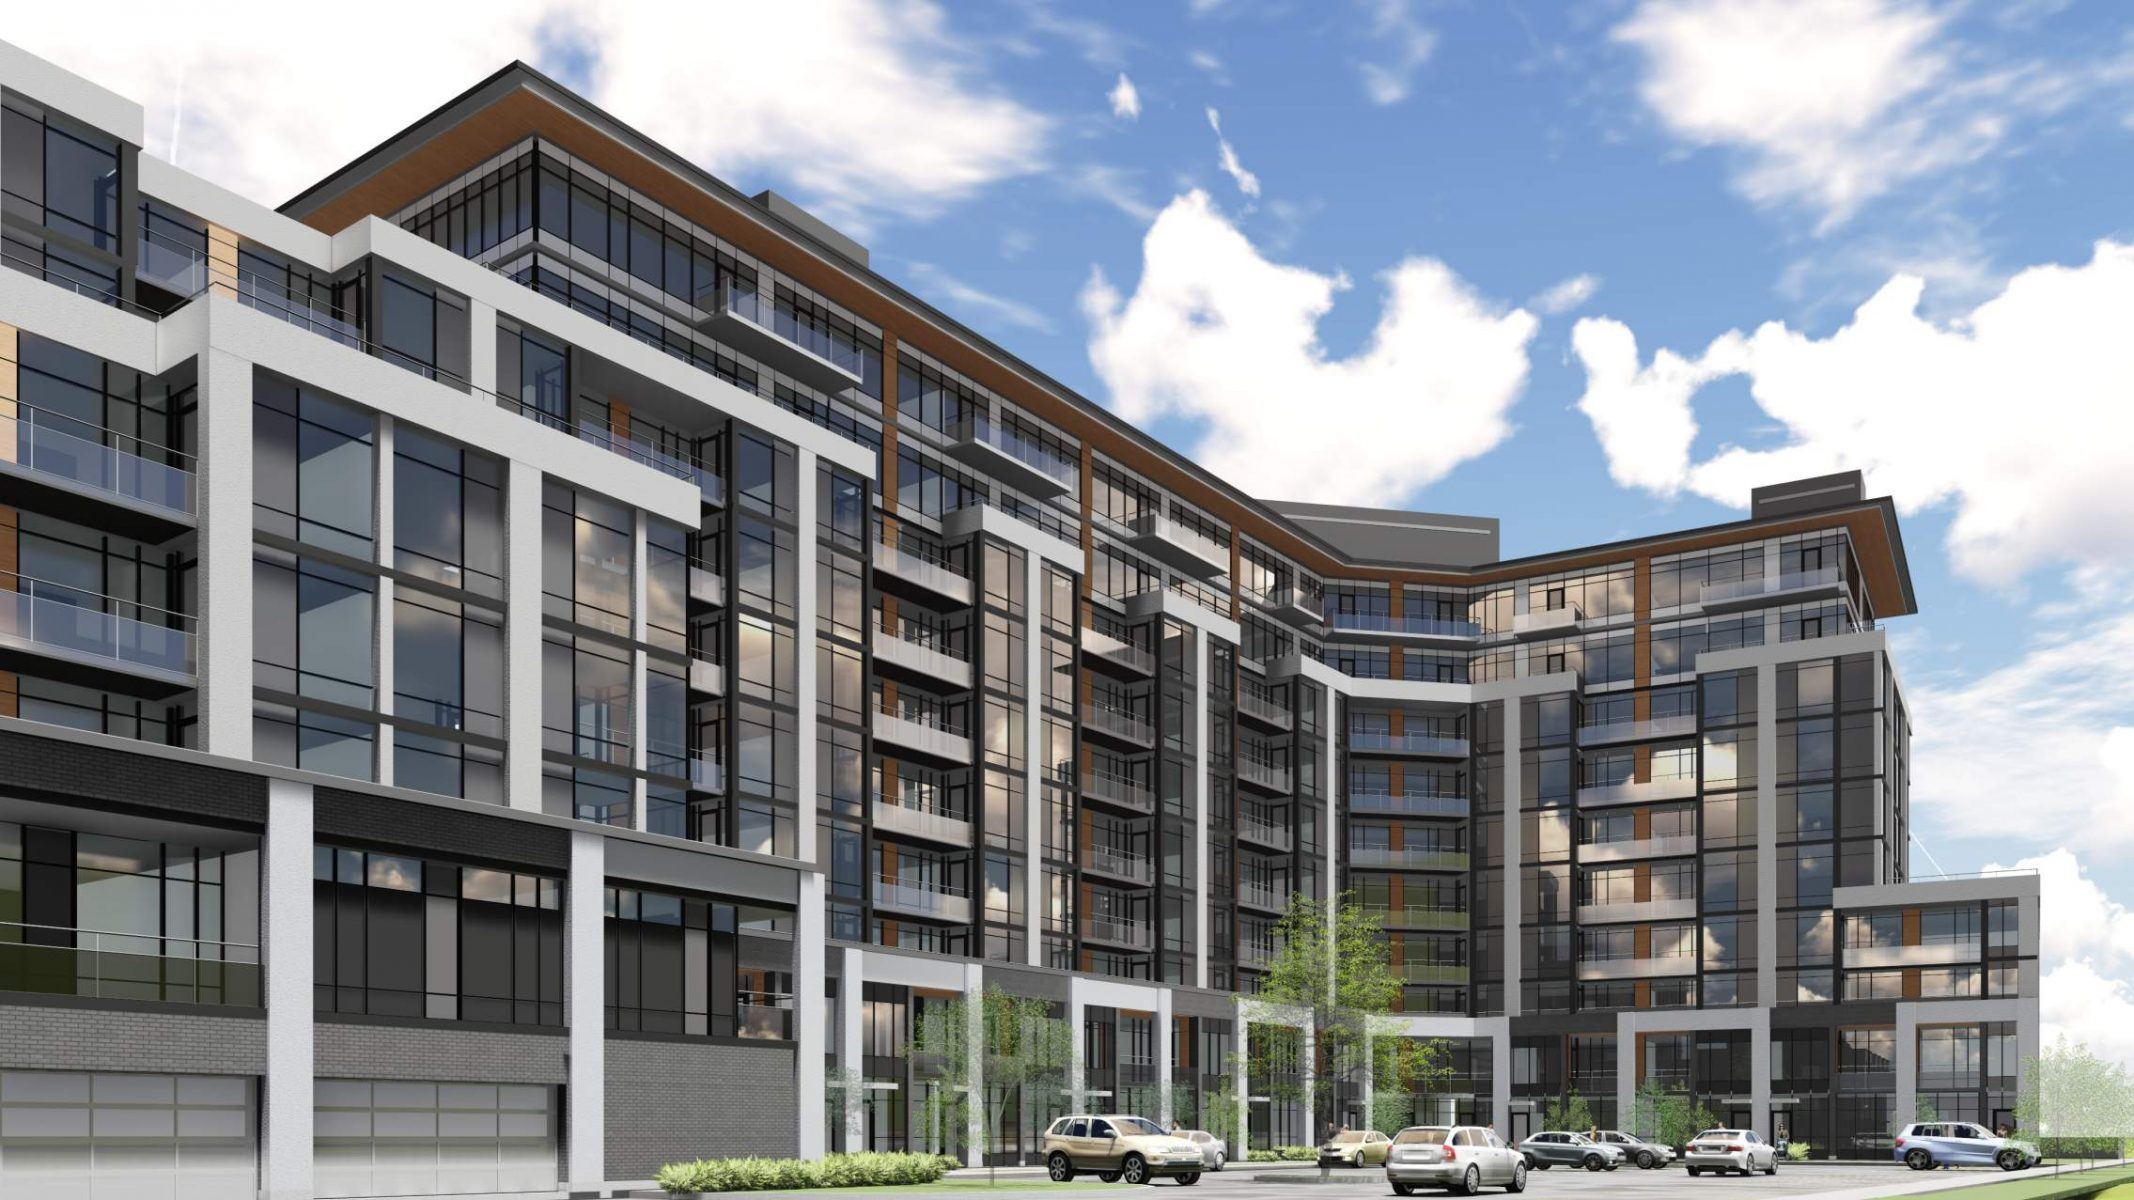 Korsiak Urban Planning - Oakville Portfolio - Mixed Use, Greenfield, Mid-Rise Development - Oakville, Ontario